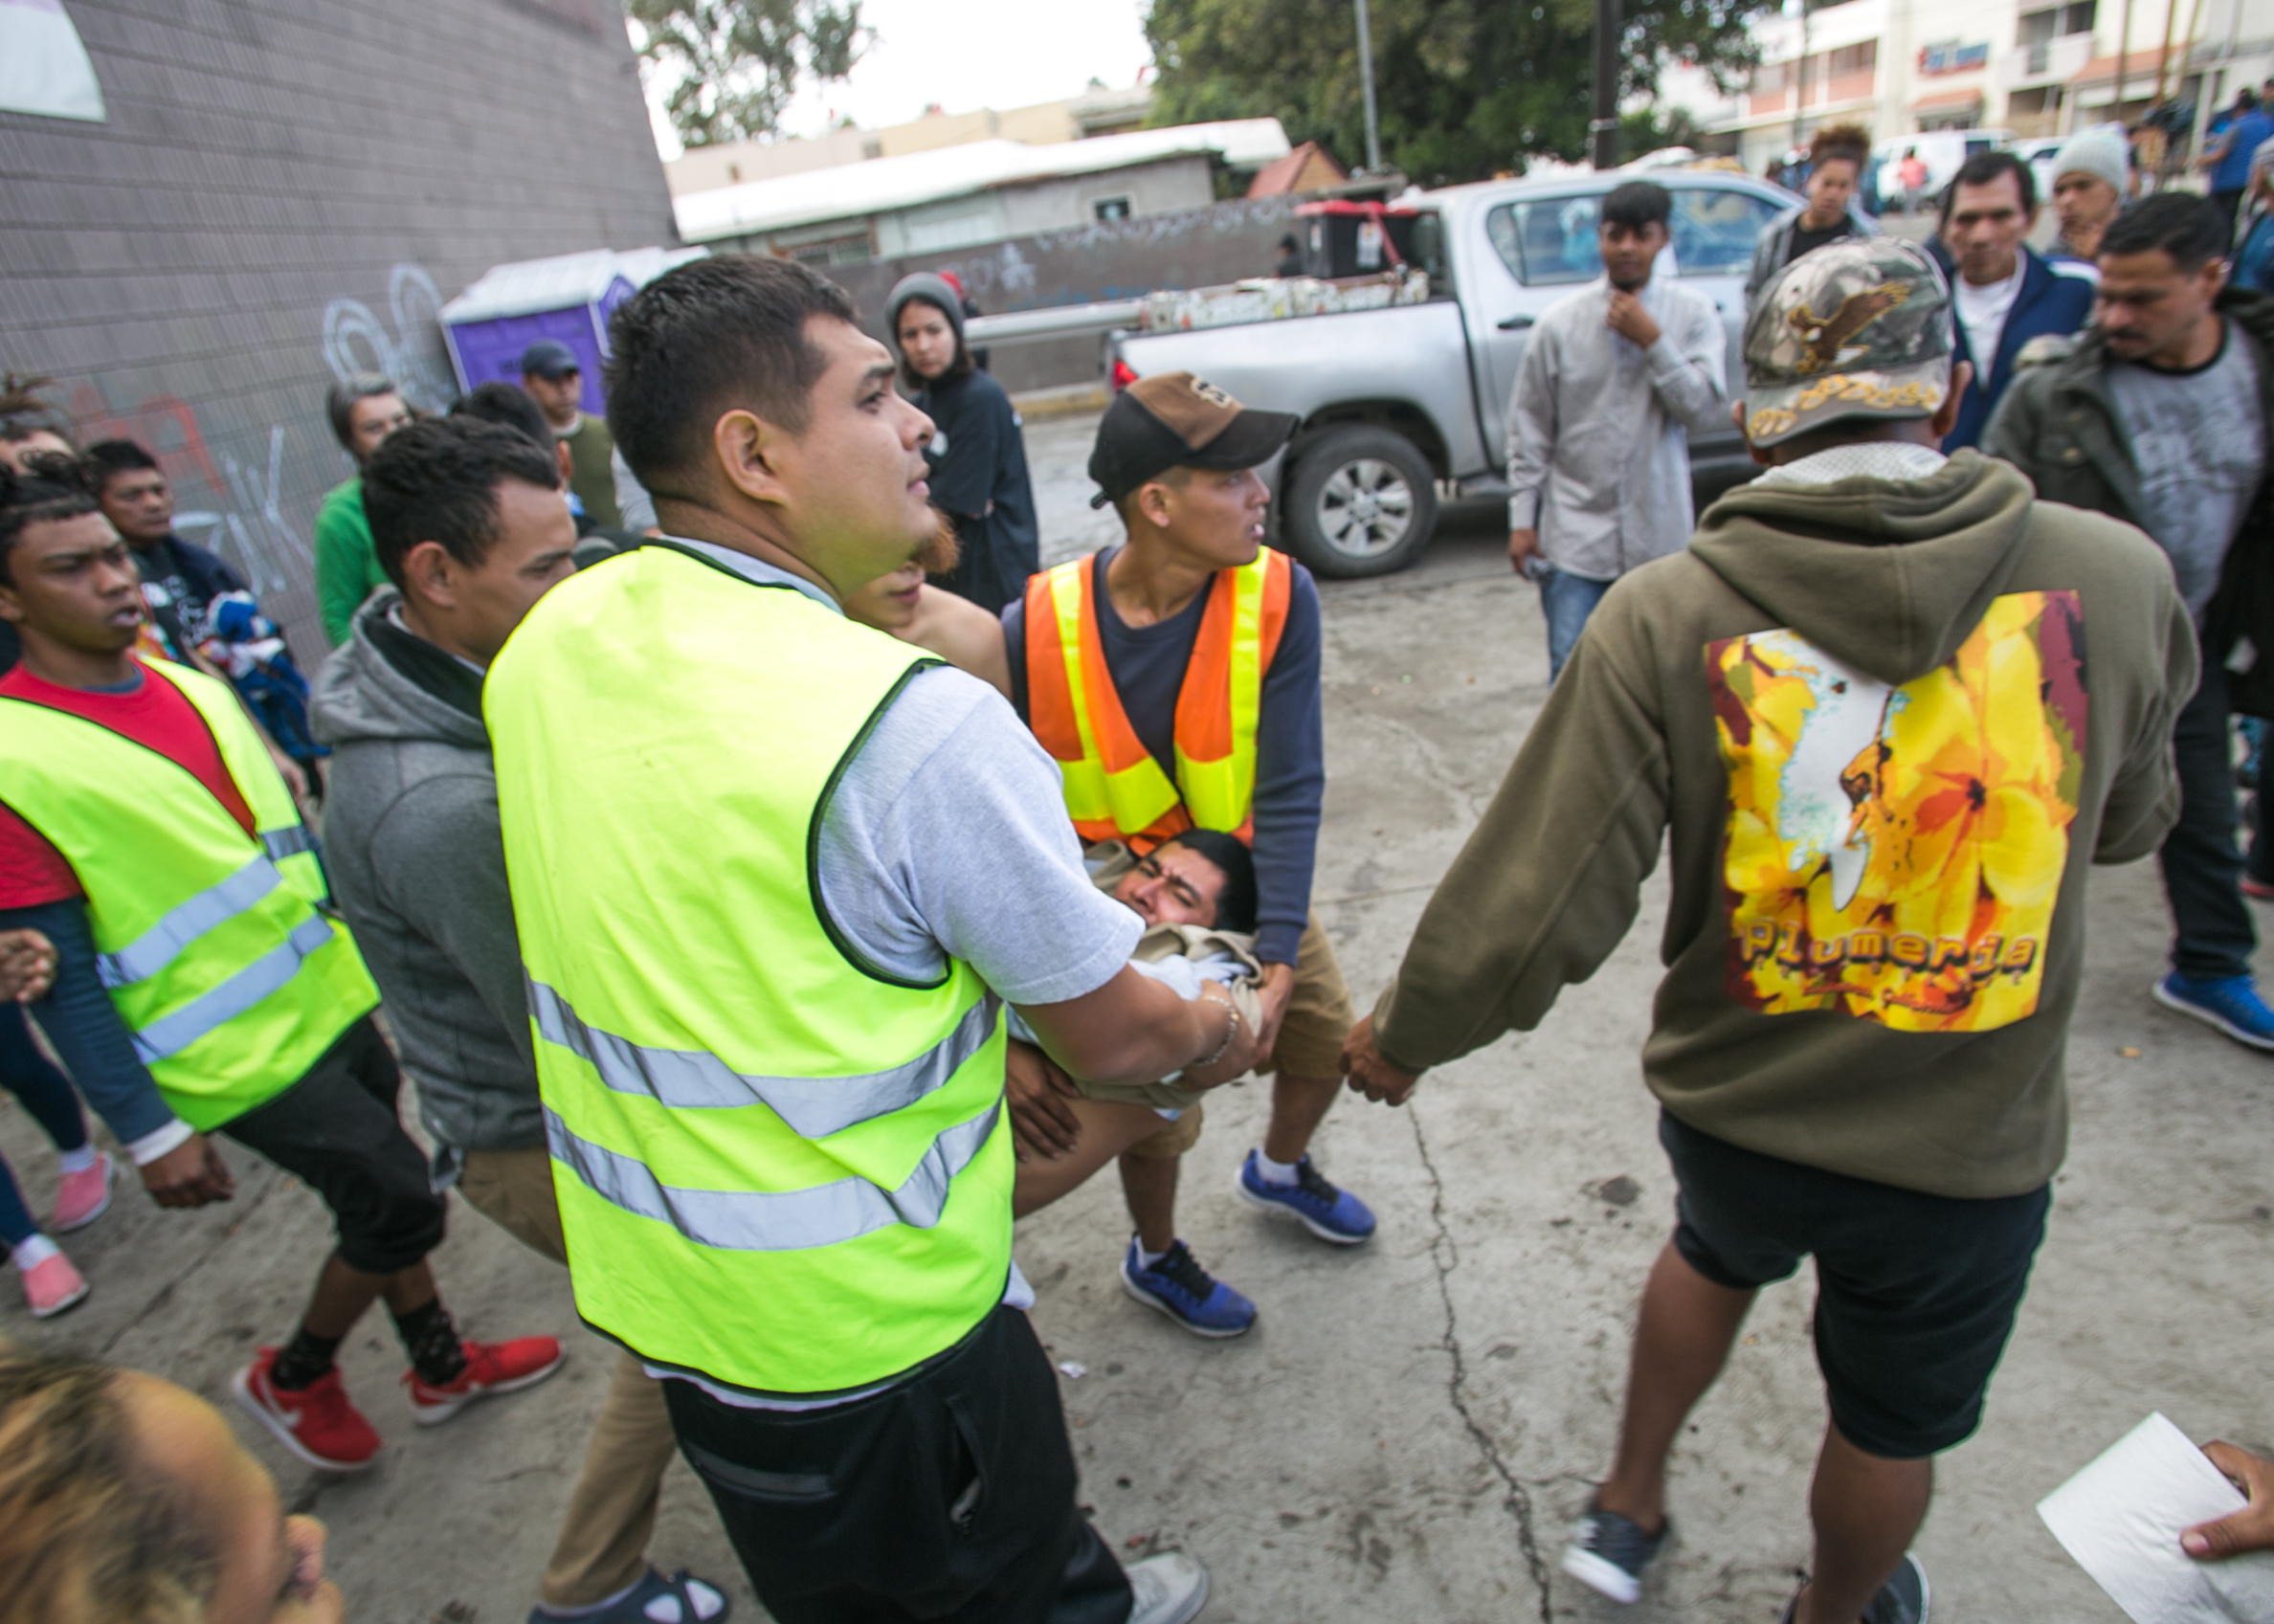 A man is carried out of the El Chinchetta refugee compound in Central Tijuana. He began seizing and vomiting due to a lack of medication according to responders on scene. Medical services were suspended in the facility several days prior in an effort to close the compound. Care from independent non-profits slipping past the police-guarded entrances is all that remain. Recent complaints from community members in Central Tijuana have lead to the government relocating migrant camps to low-income suburban communities on the outskirts of Tijuana.